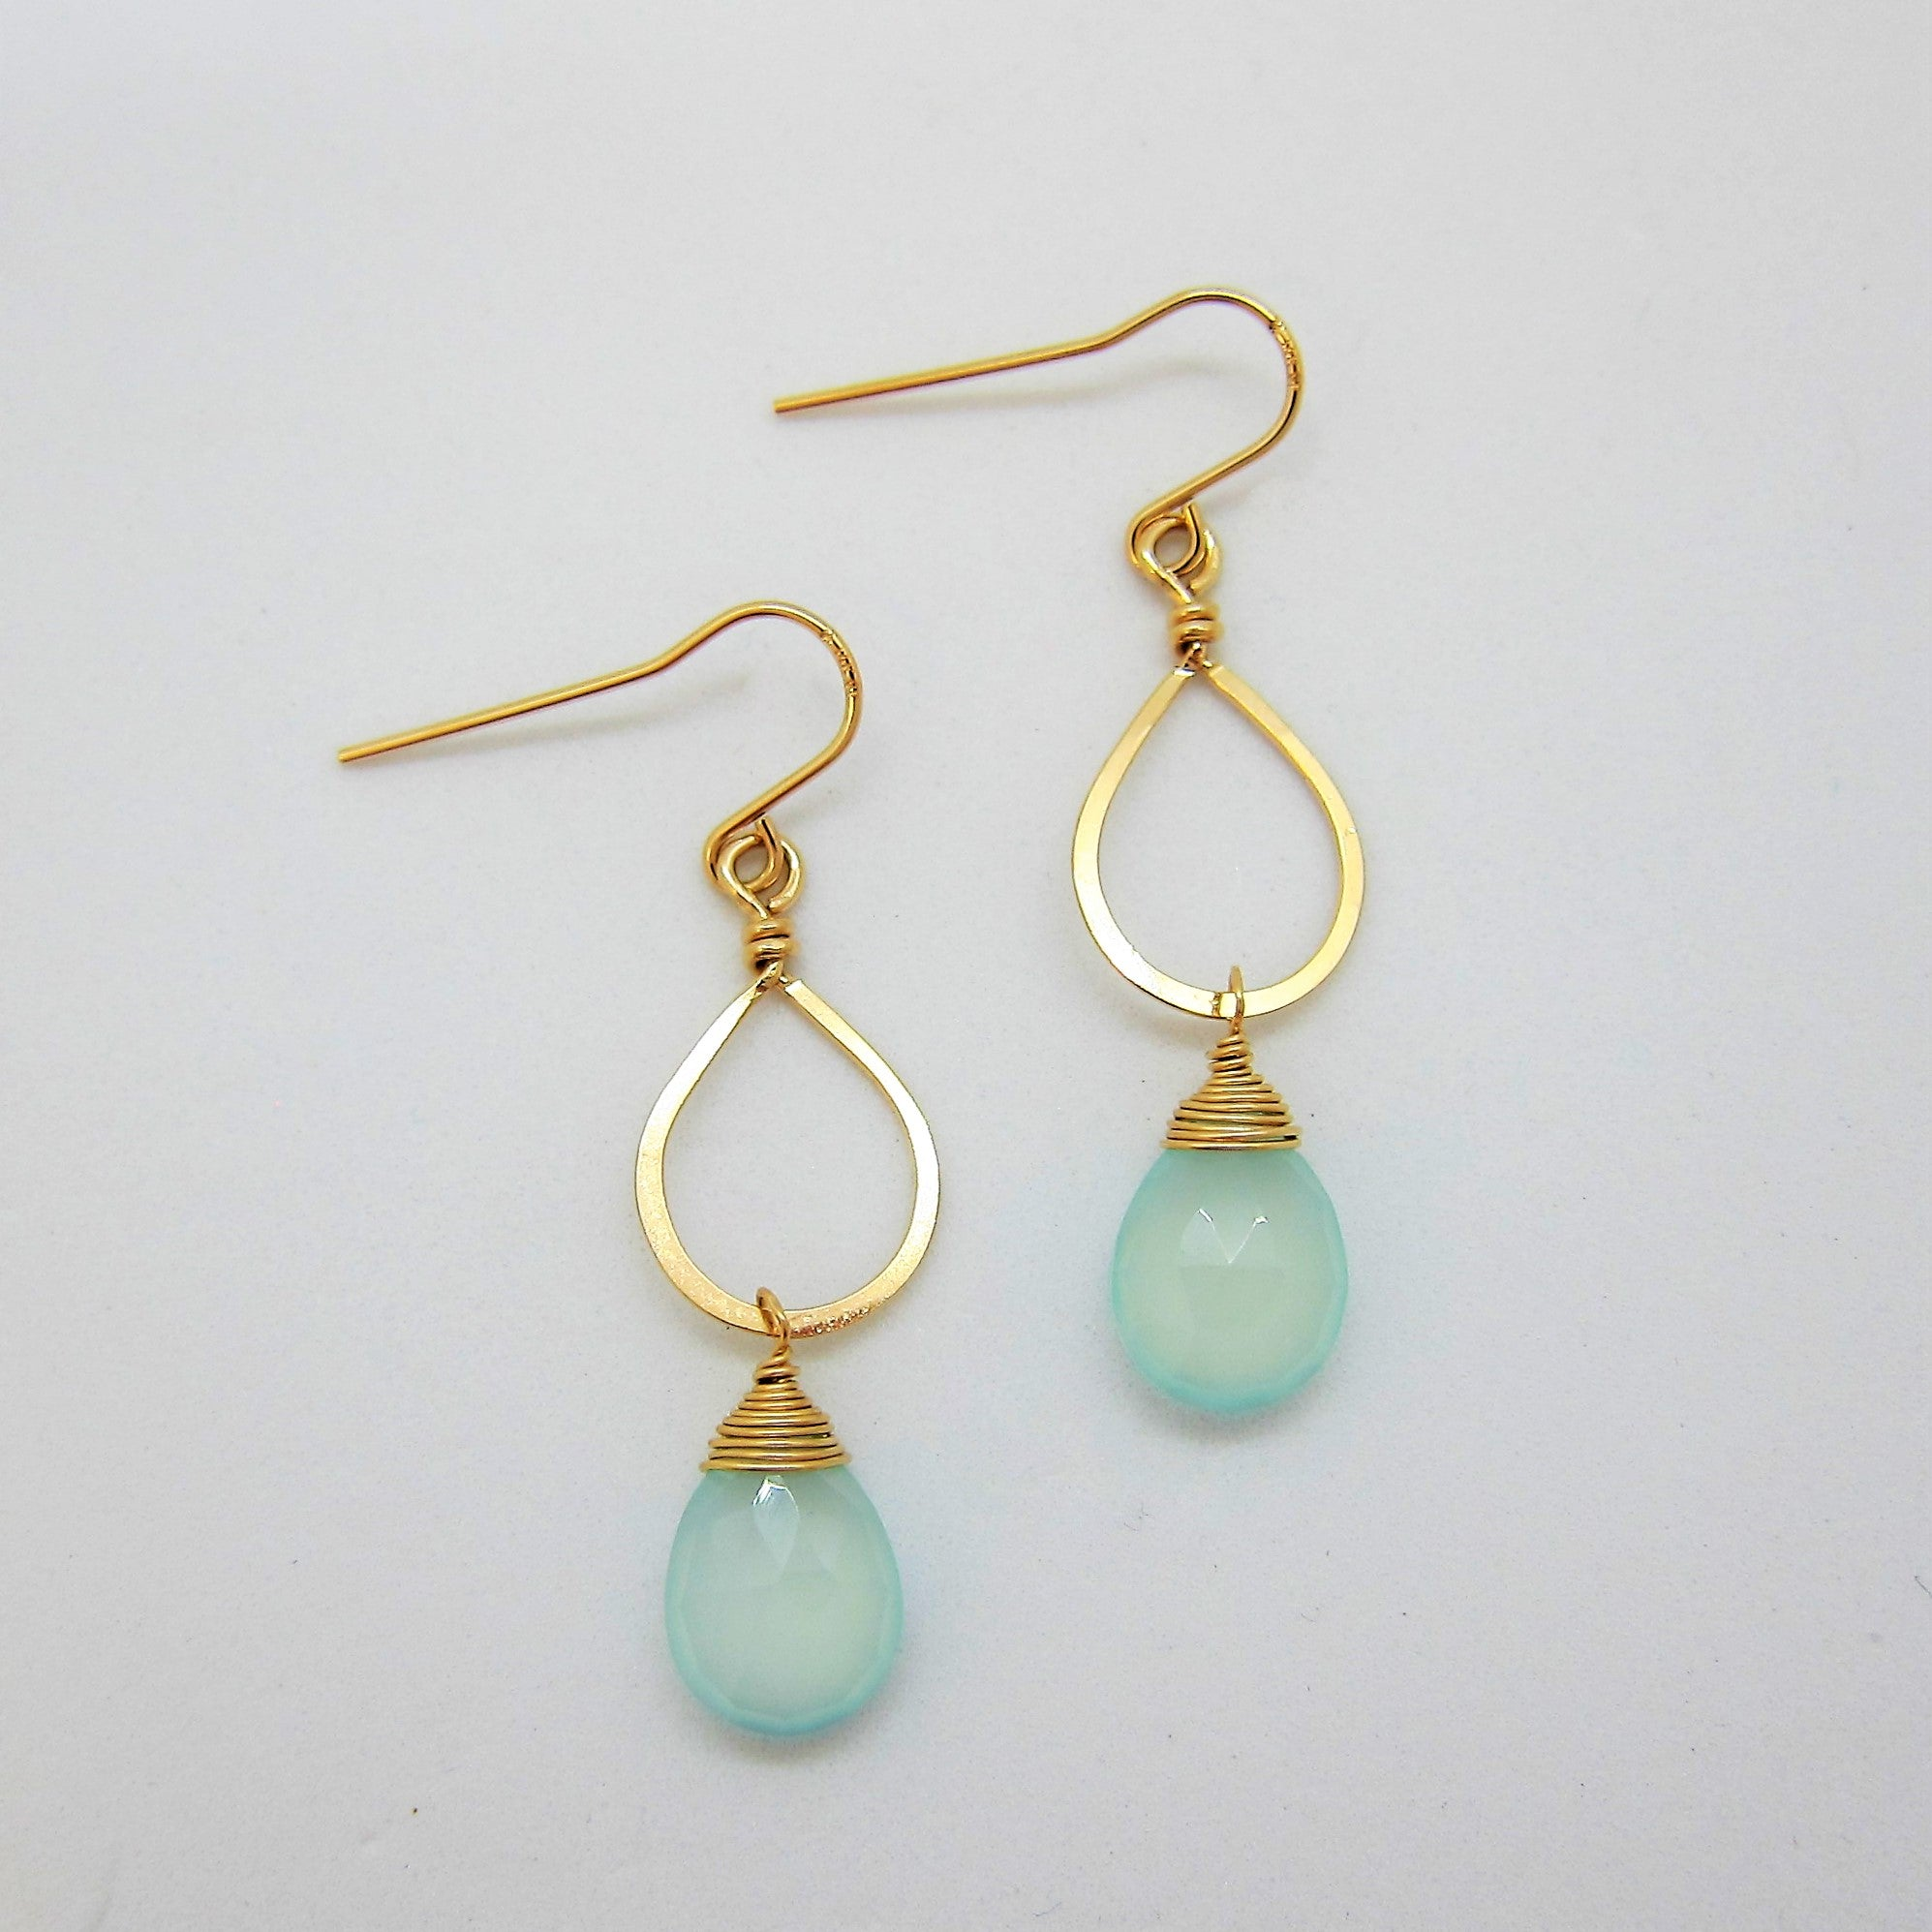 14kg Hand-Forged Aqua Chalcedony Earrings